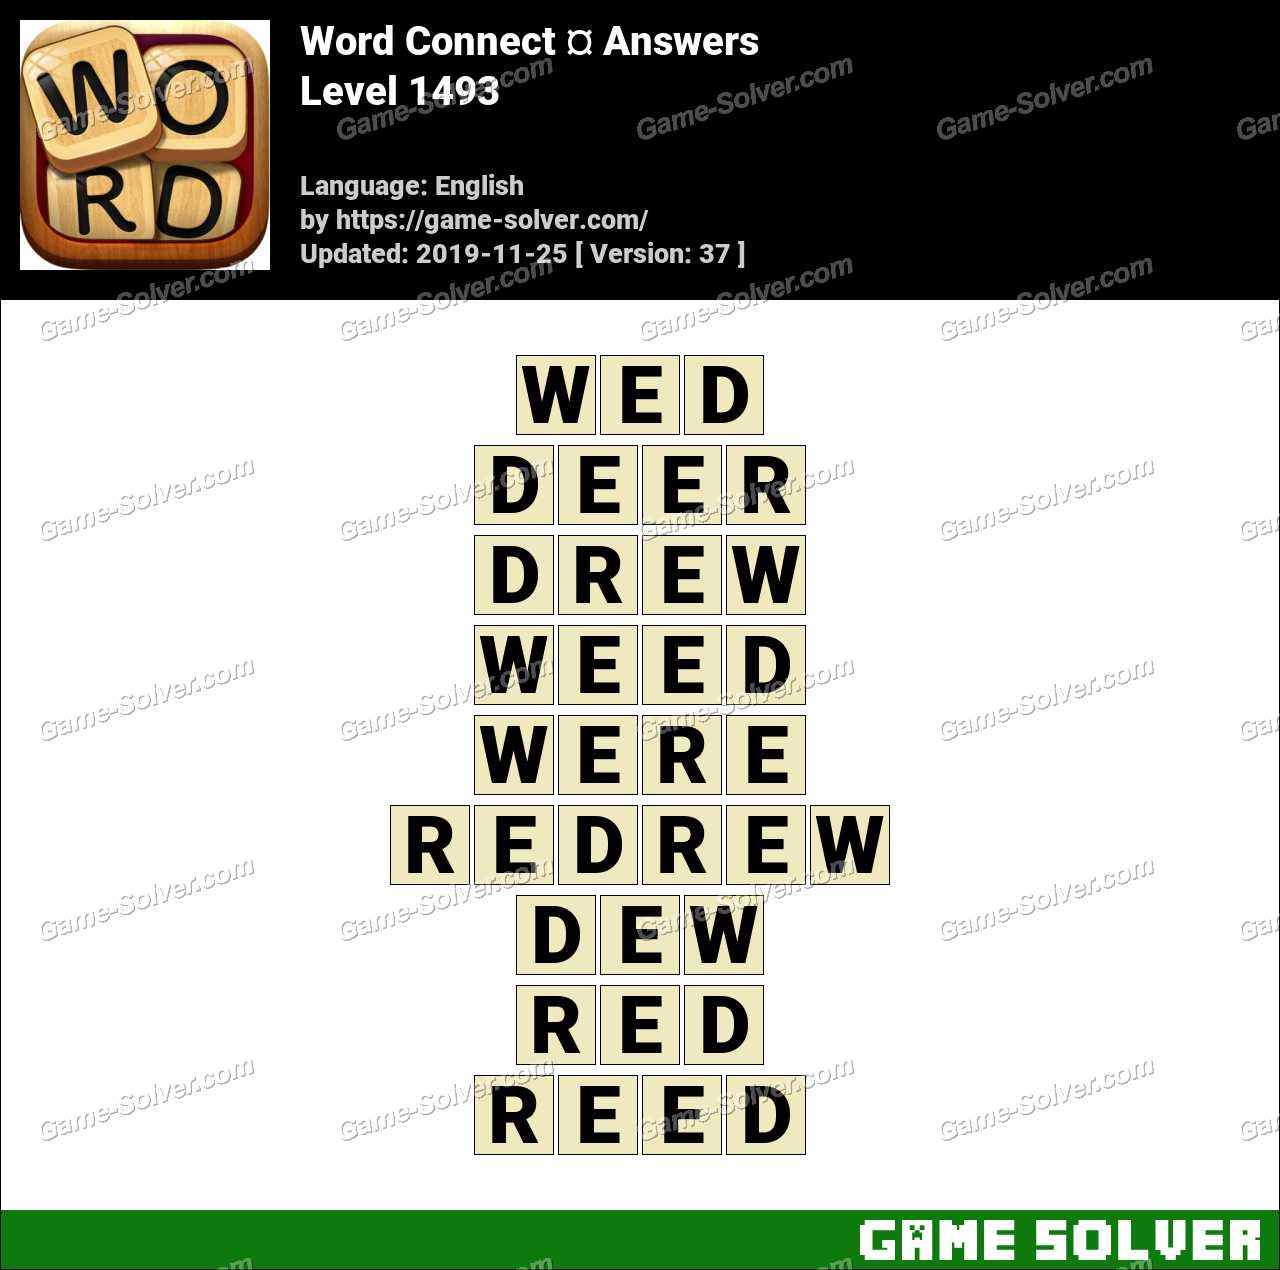 Word Connect Level 1493 Answers